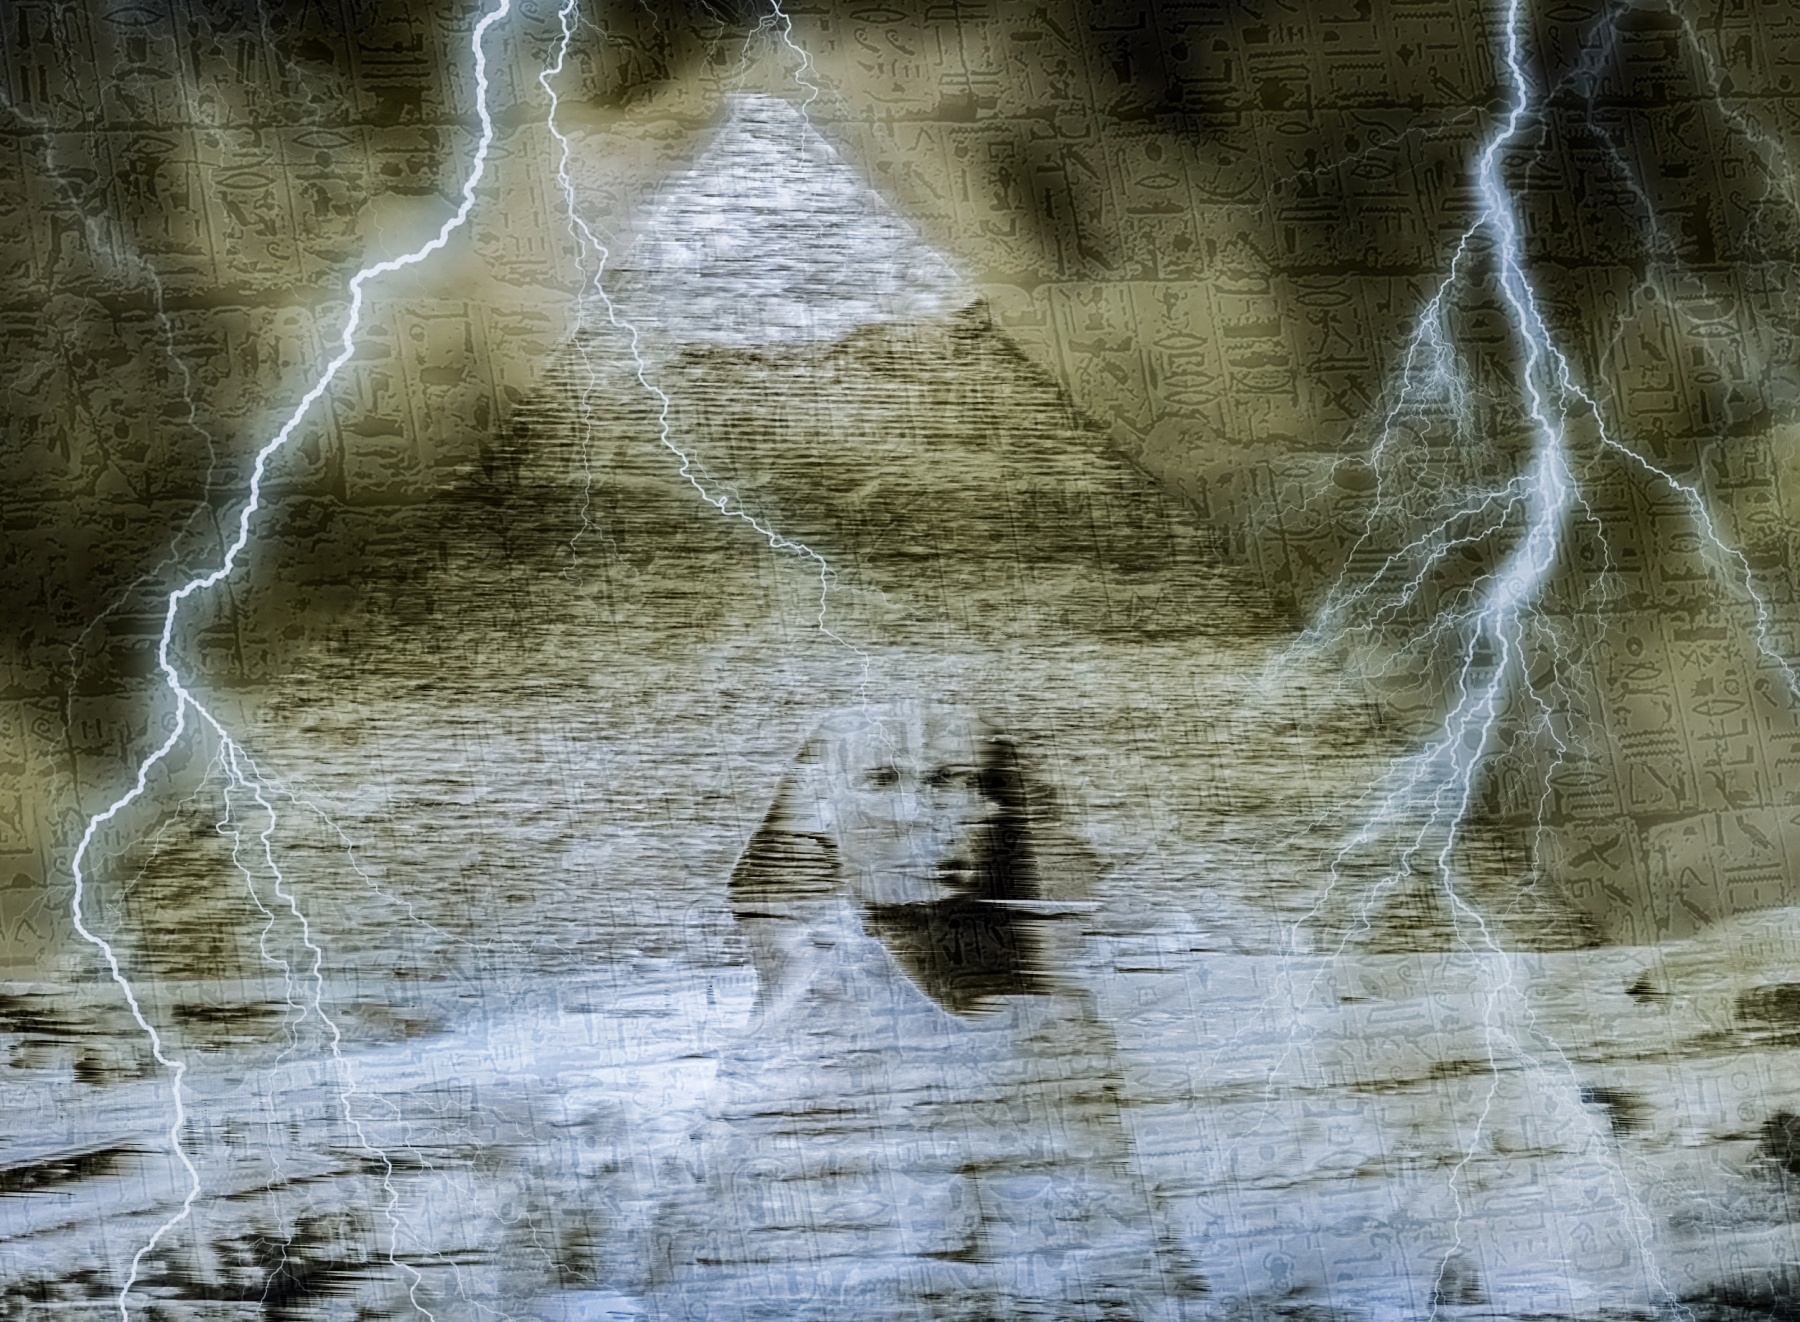 Fantasy image of the curse on the pyramids and the sphinx